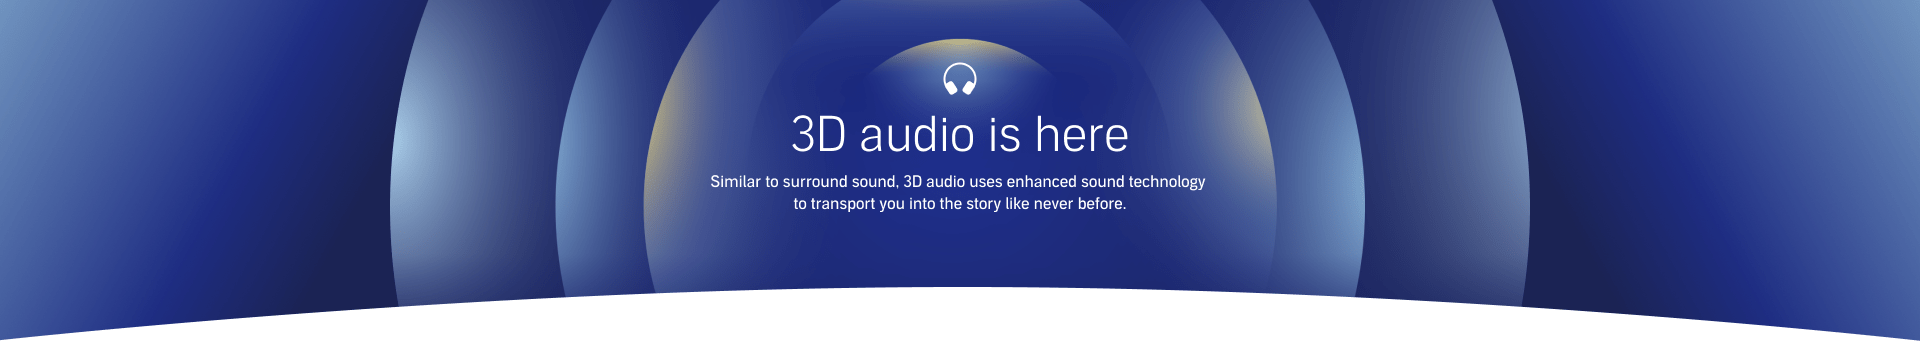 3D audio is here